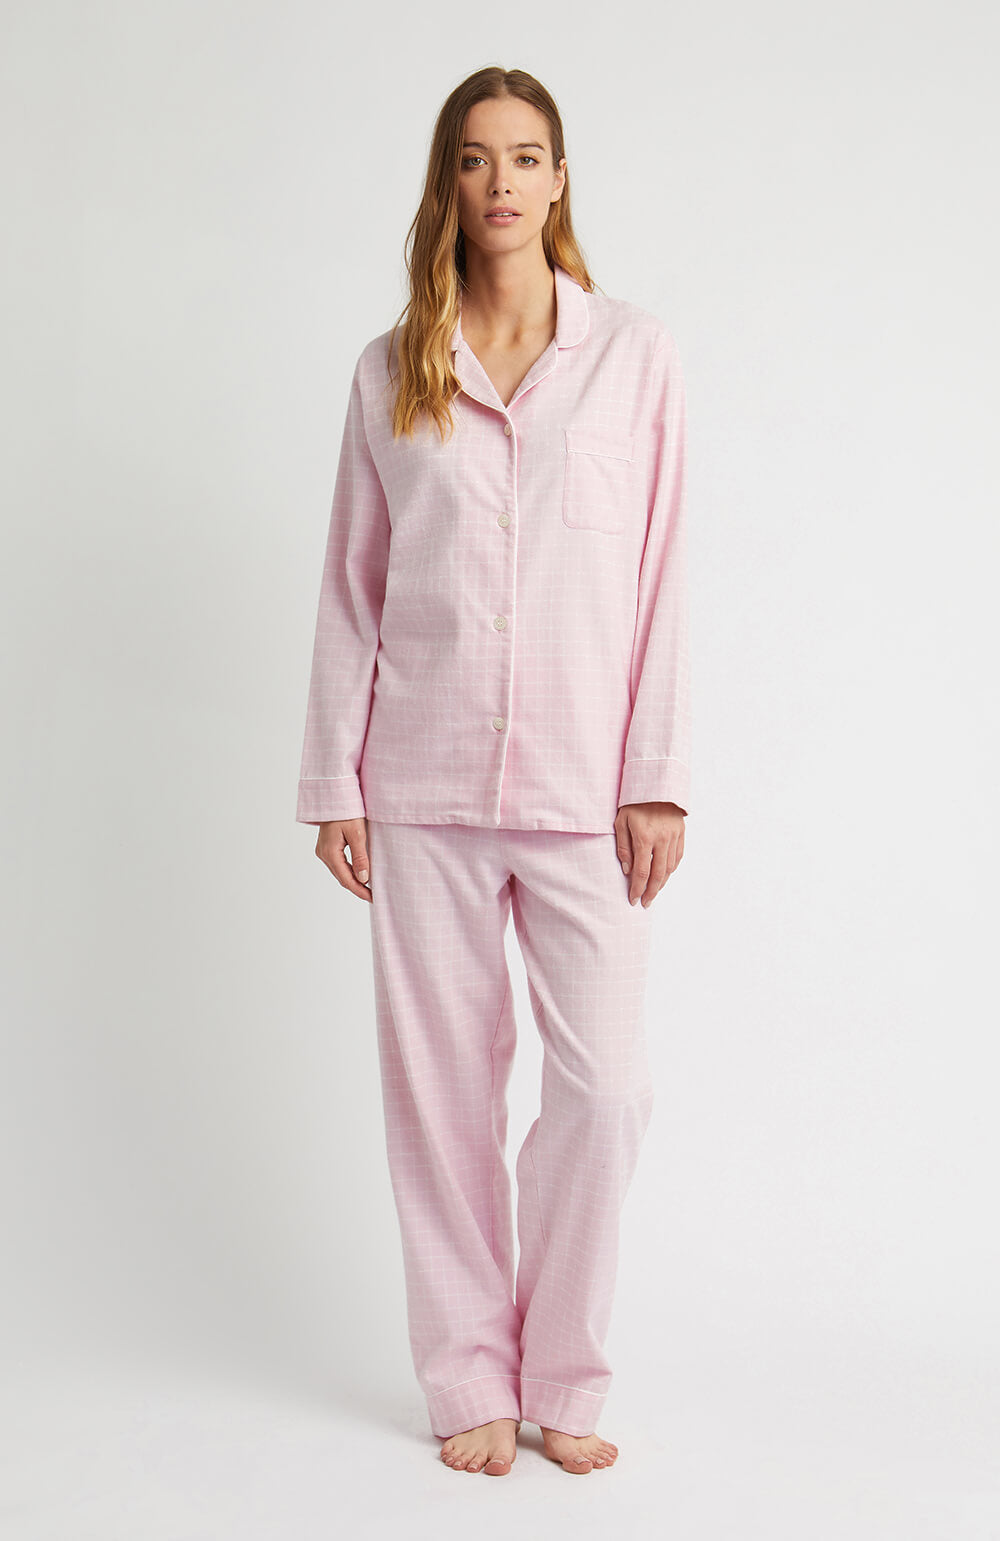 Brushed Pastel Pyjamas (blps) - Pink Check | Bonsoir of London